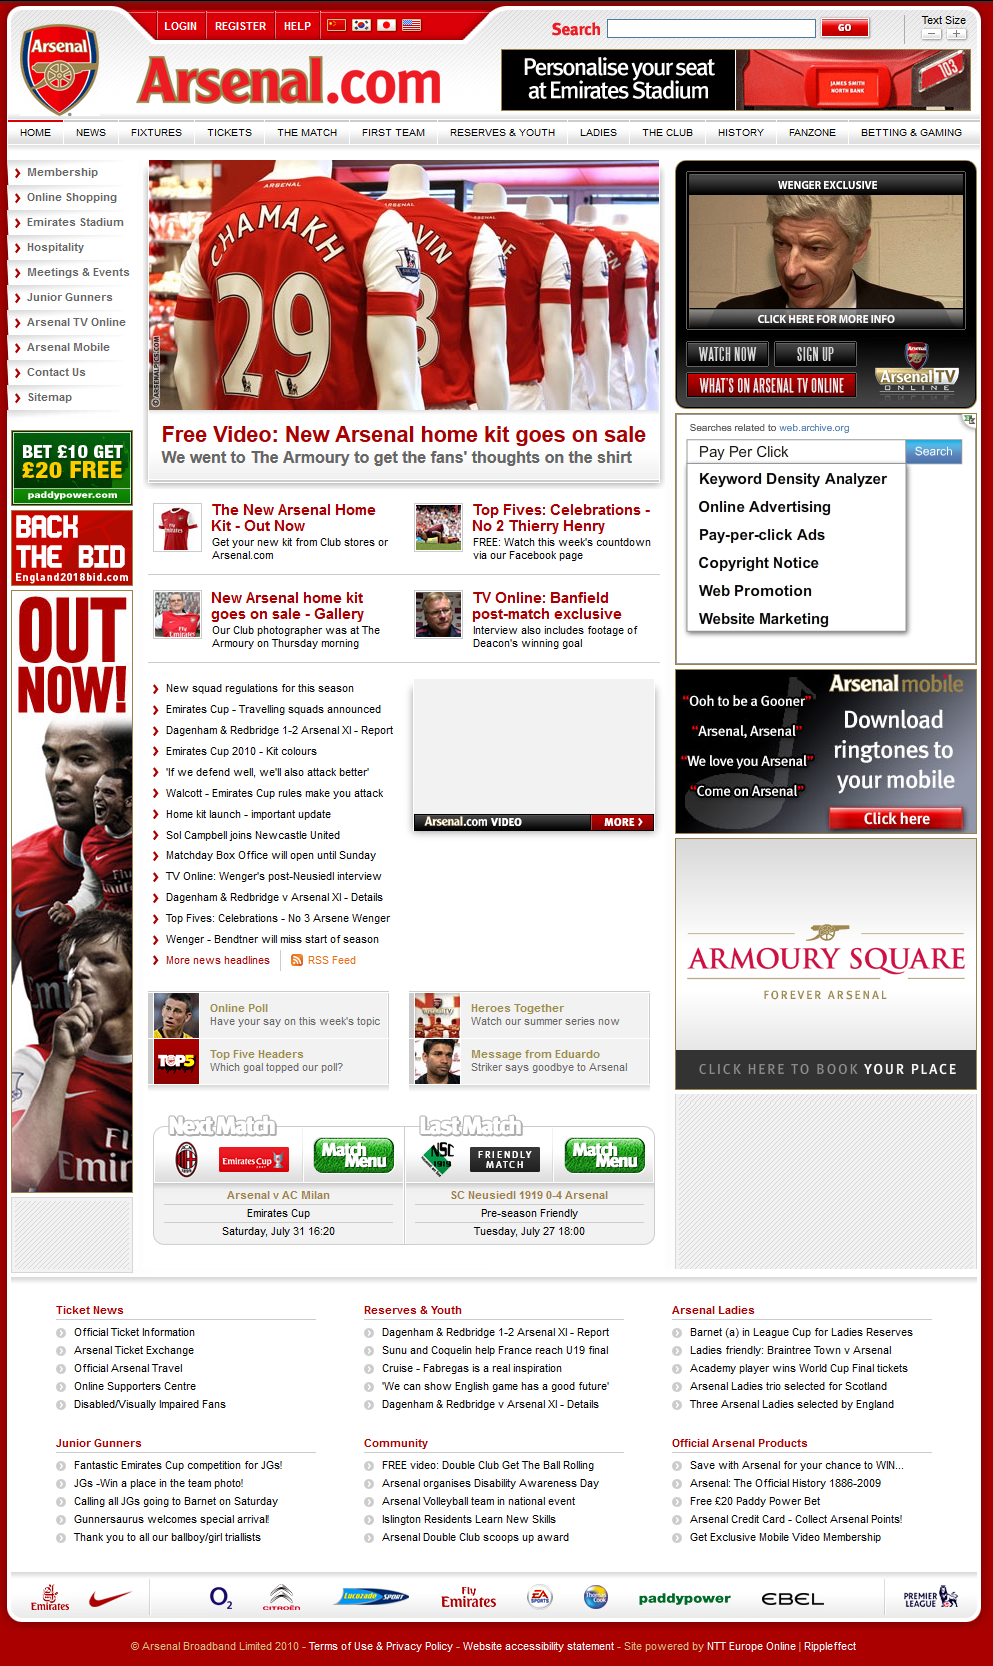 Arsenal website through the years – from 1998 to present